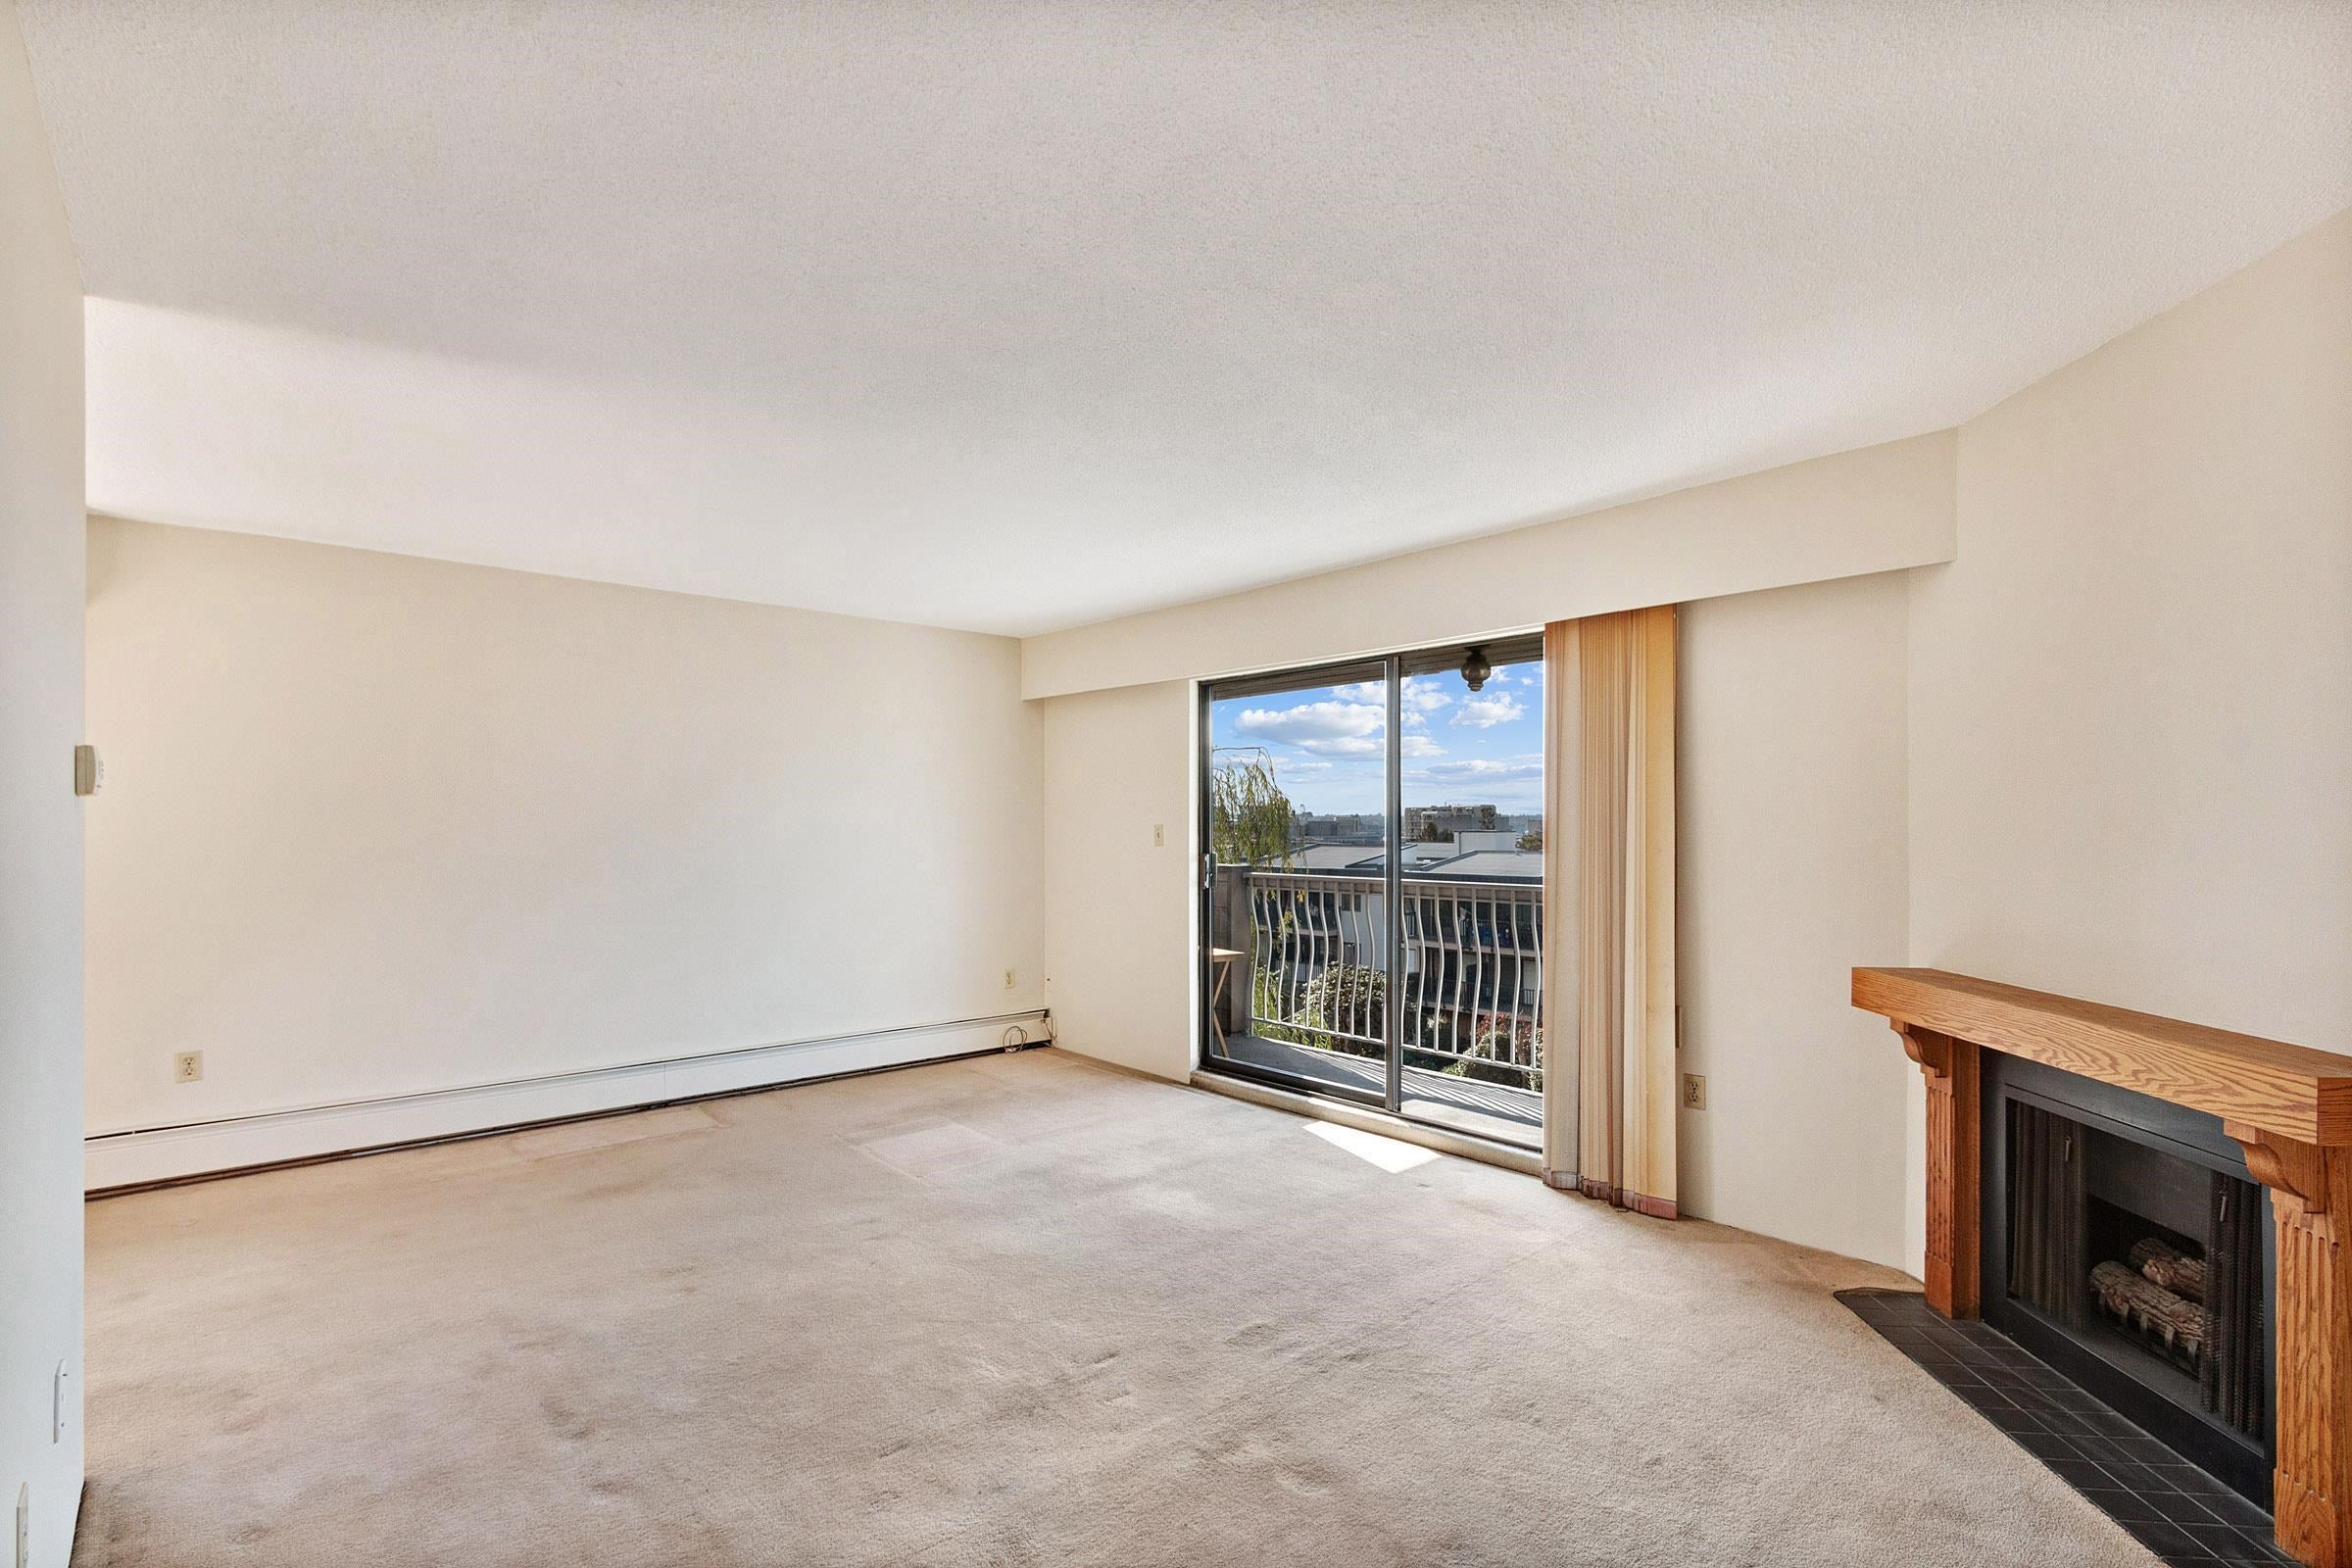 301 264 W 2ND STREET - Lower Lonsdale Apartment/Condo for sale, 2 Bedrooms (R2625527) - #4